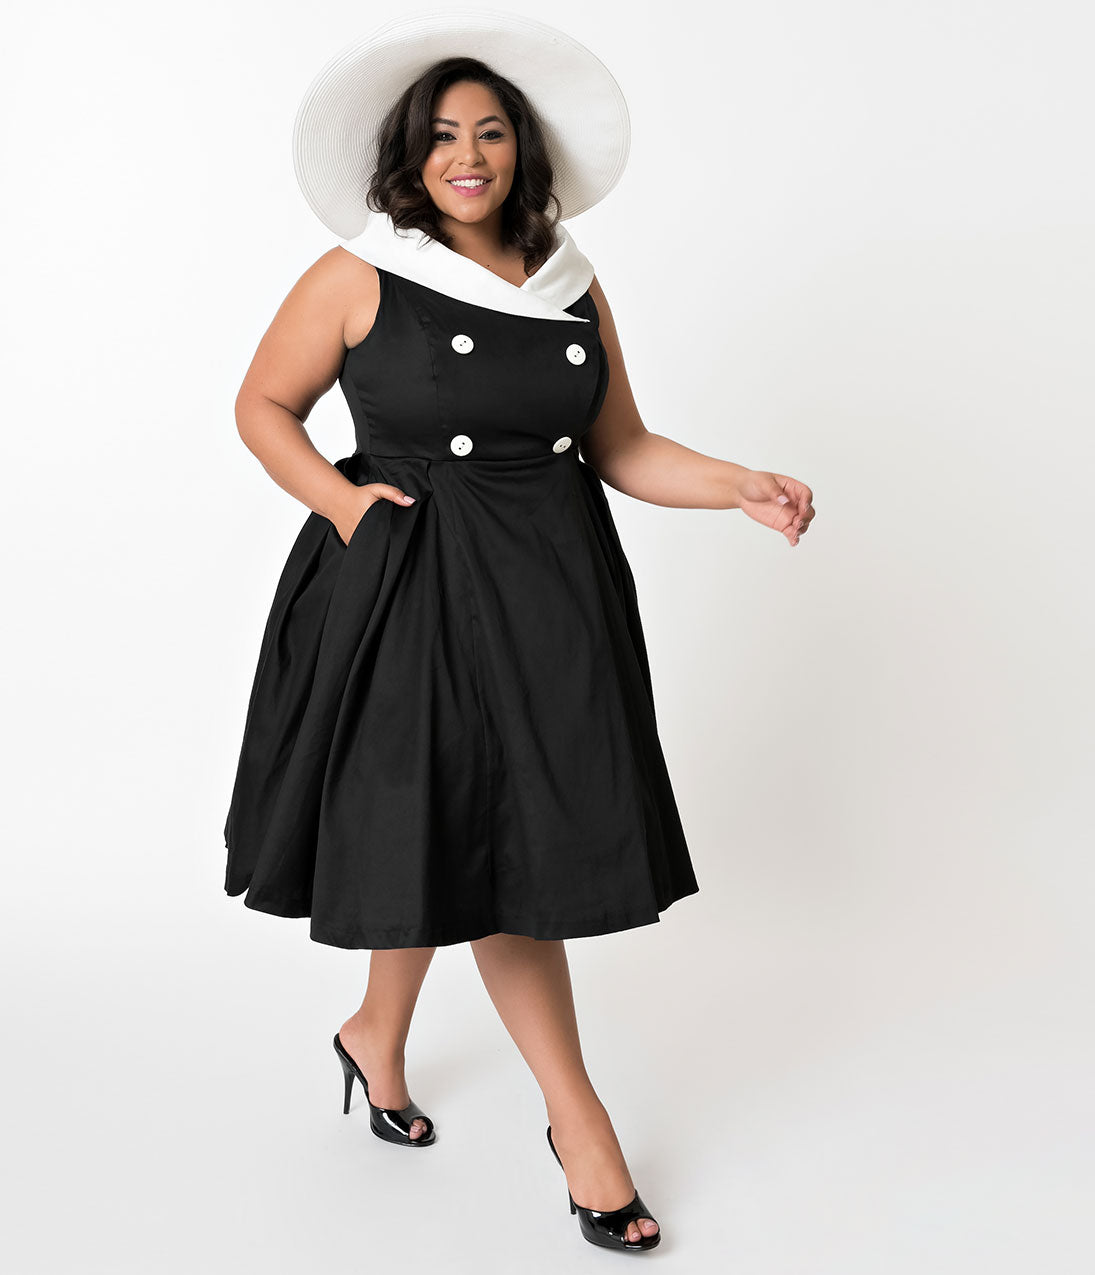 Aug 26,  · Where can I buy size 00 WOMEN'S clothing? I am size 00 and I am NOT a junior. I want to dress my age, and I find it incredibly hard to since the smallest woman's size I can find is a topinsurances.ga: Resolved.